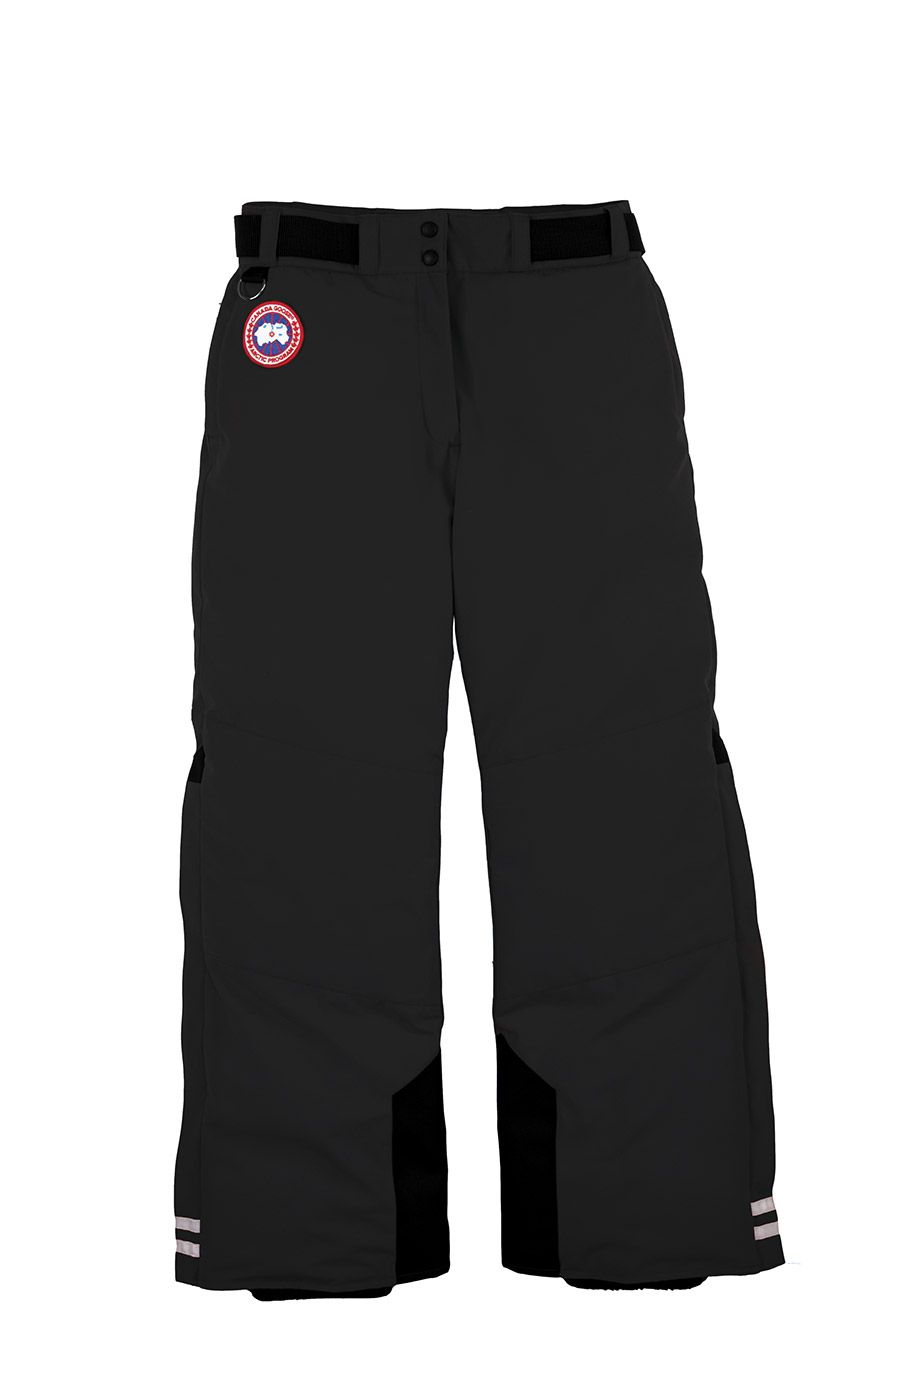 ... Canada Goose parka. No matter your environment or activity, wild winds and frigid temperatures can slice through pants